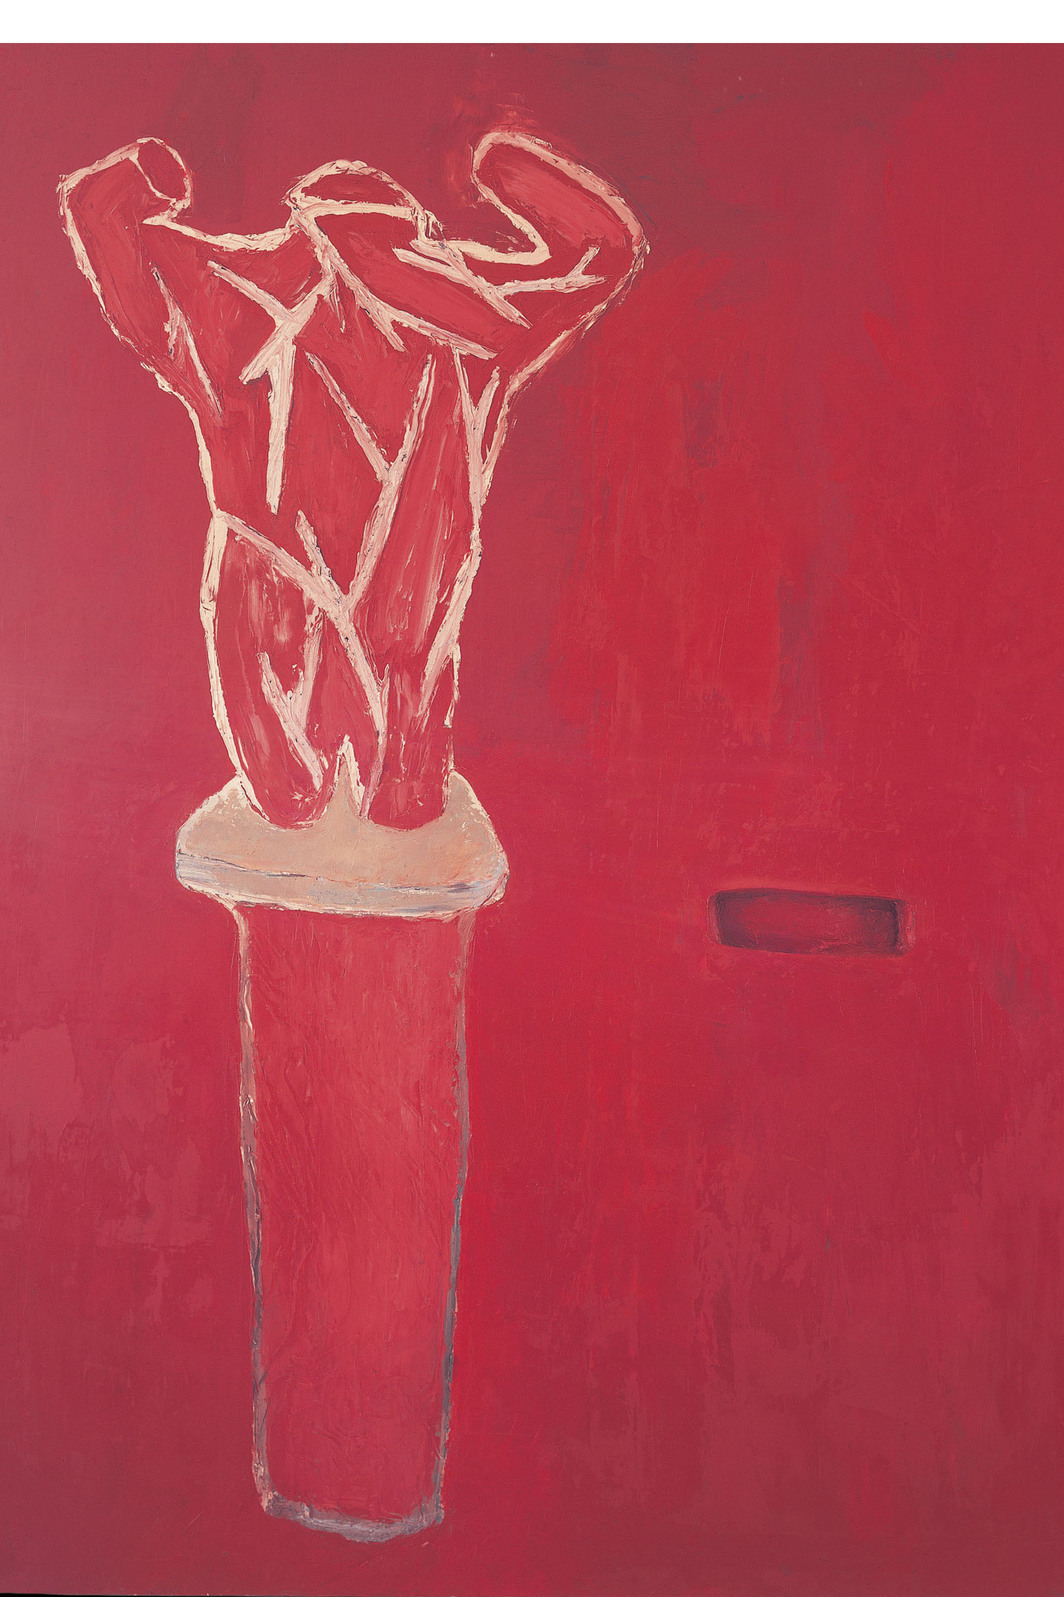 Julian Schnabel, Accatone, 1978, oil and wax on canvas, 7' x 6'.